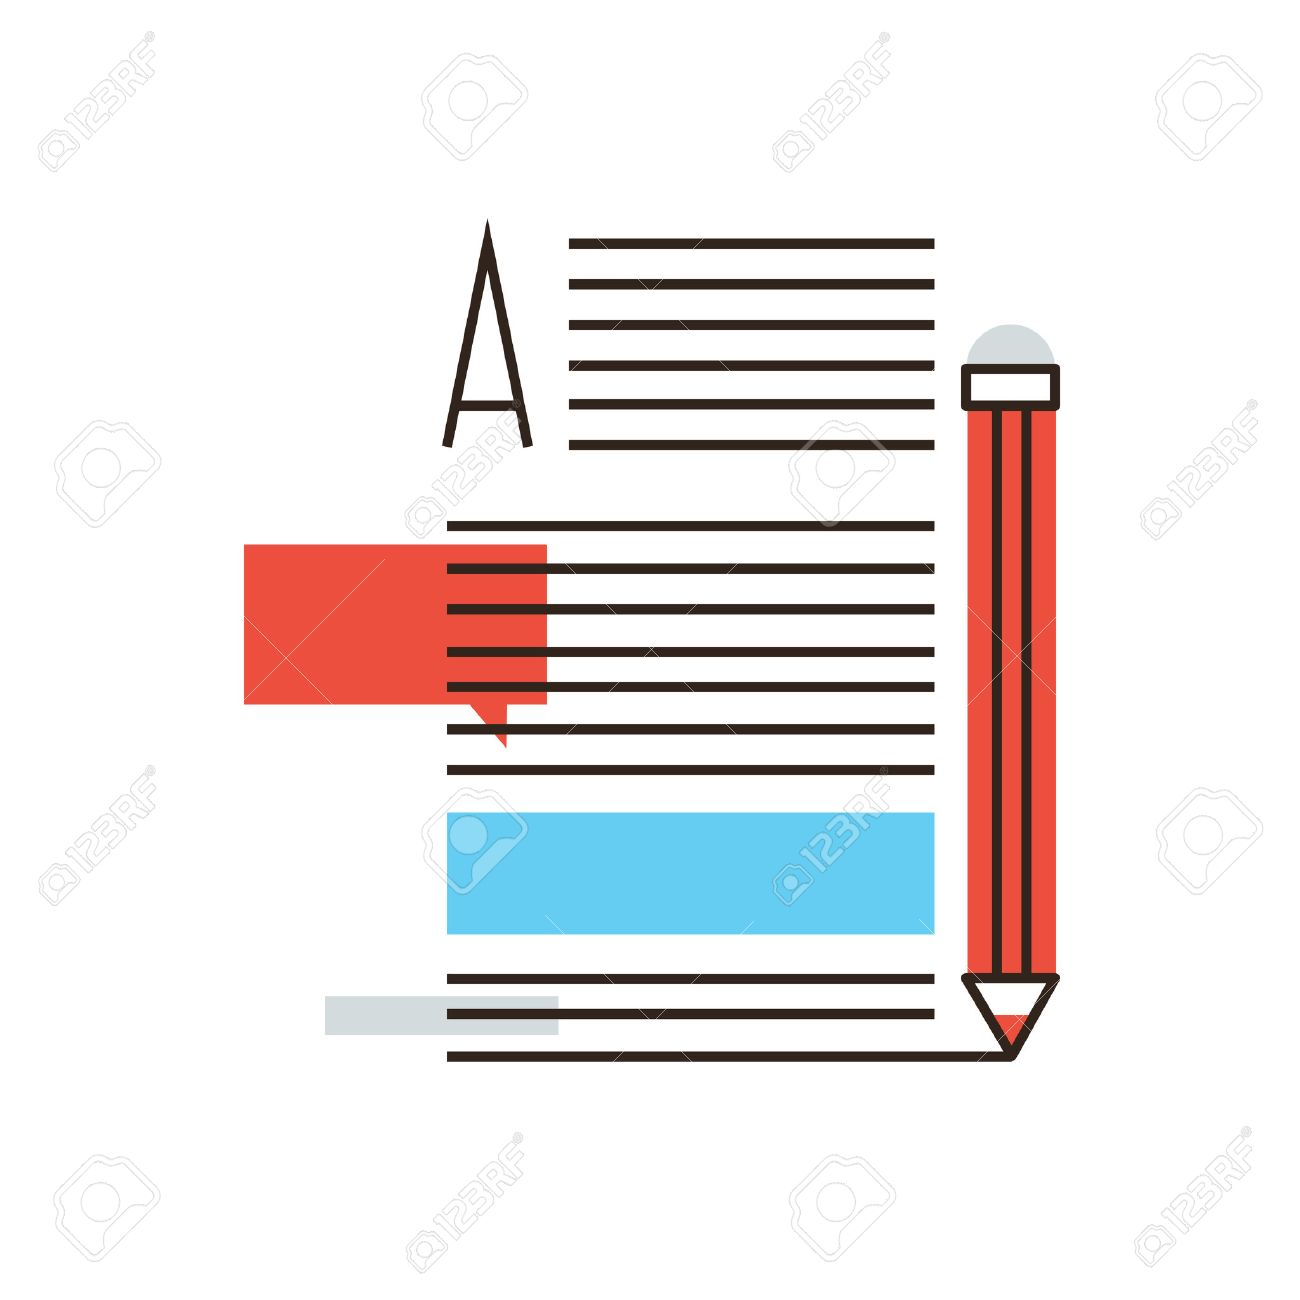 Thin line icon with flat design element of writing articles, internet blogging, text page of writer blog, media content, copywriting news, post info. Modern style logo vector illustration concept. - 39947563